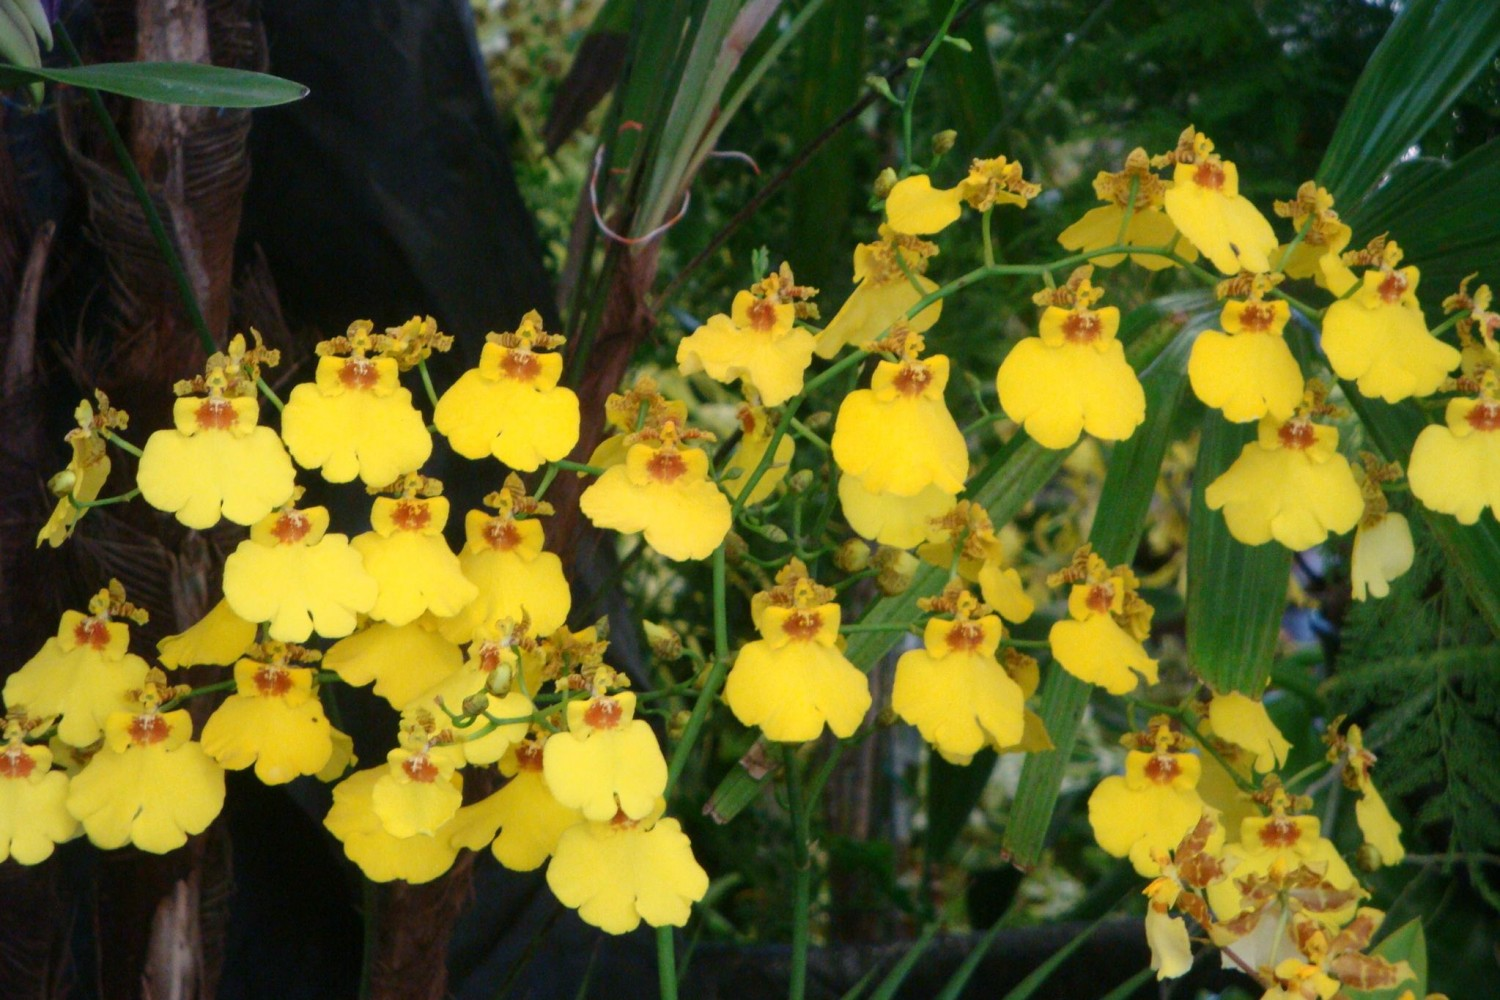 oncidium orchid in bloom